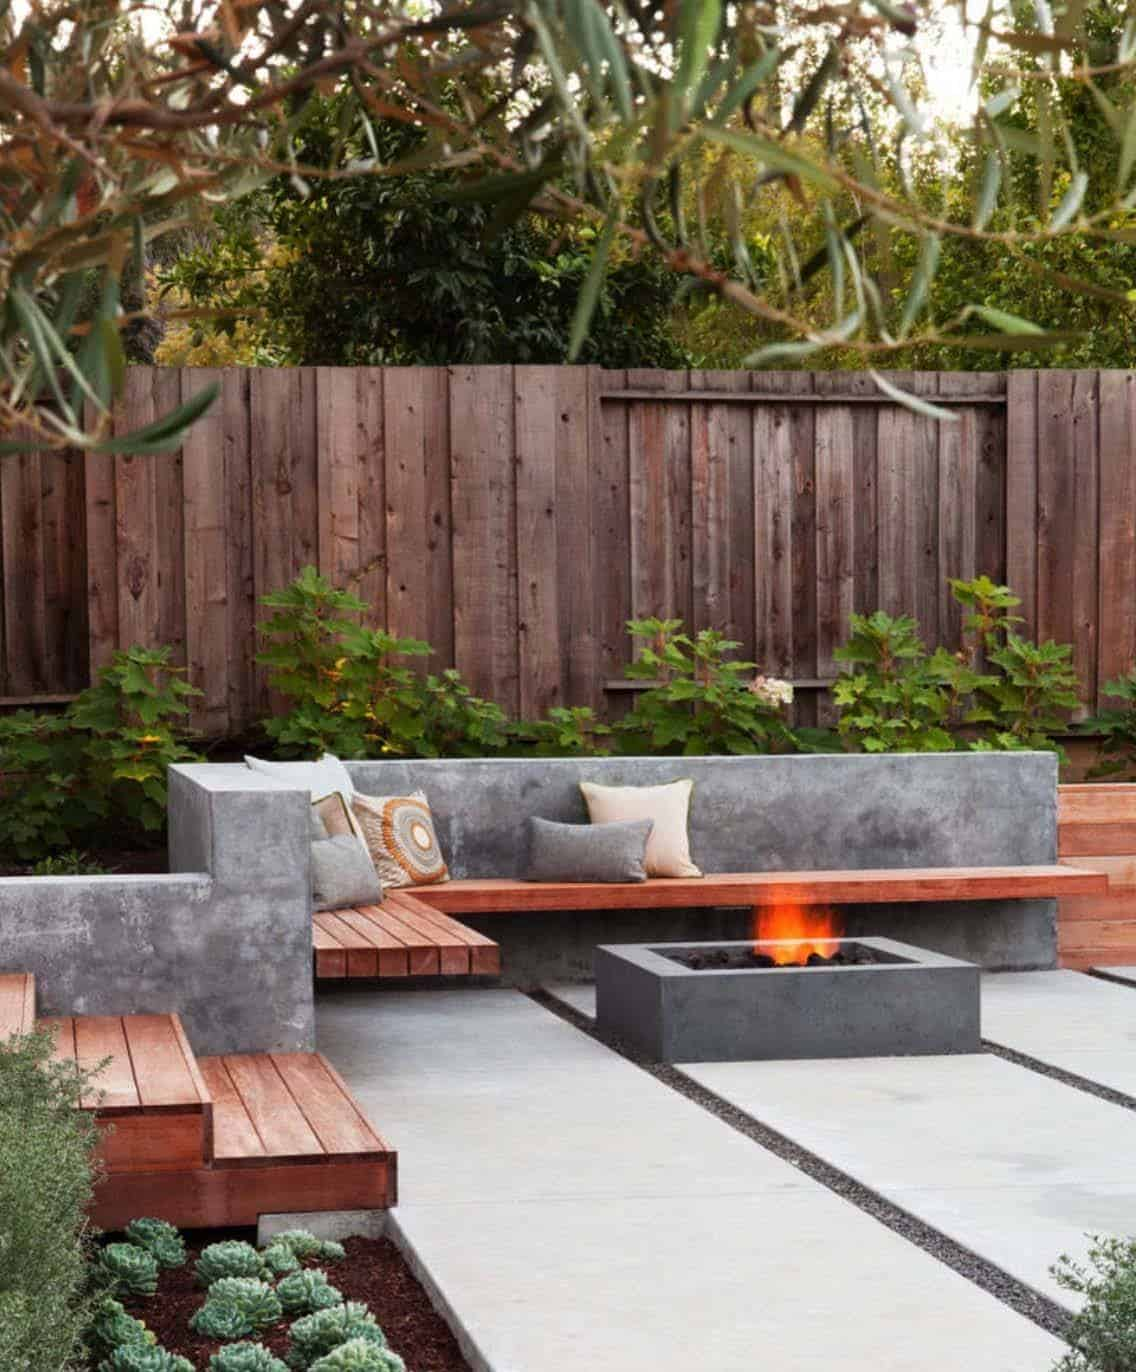 Patio ideas on a budget designs Winduprocketapps 35 Modern Outdoor Patio Designs That Will Blow Your Mind Noahseclecticcom Modern Patio Design Ideas Noahseclecticcom